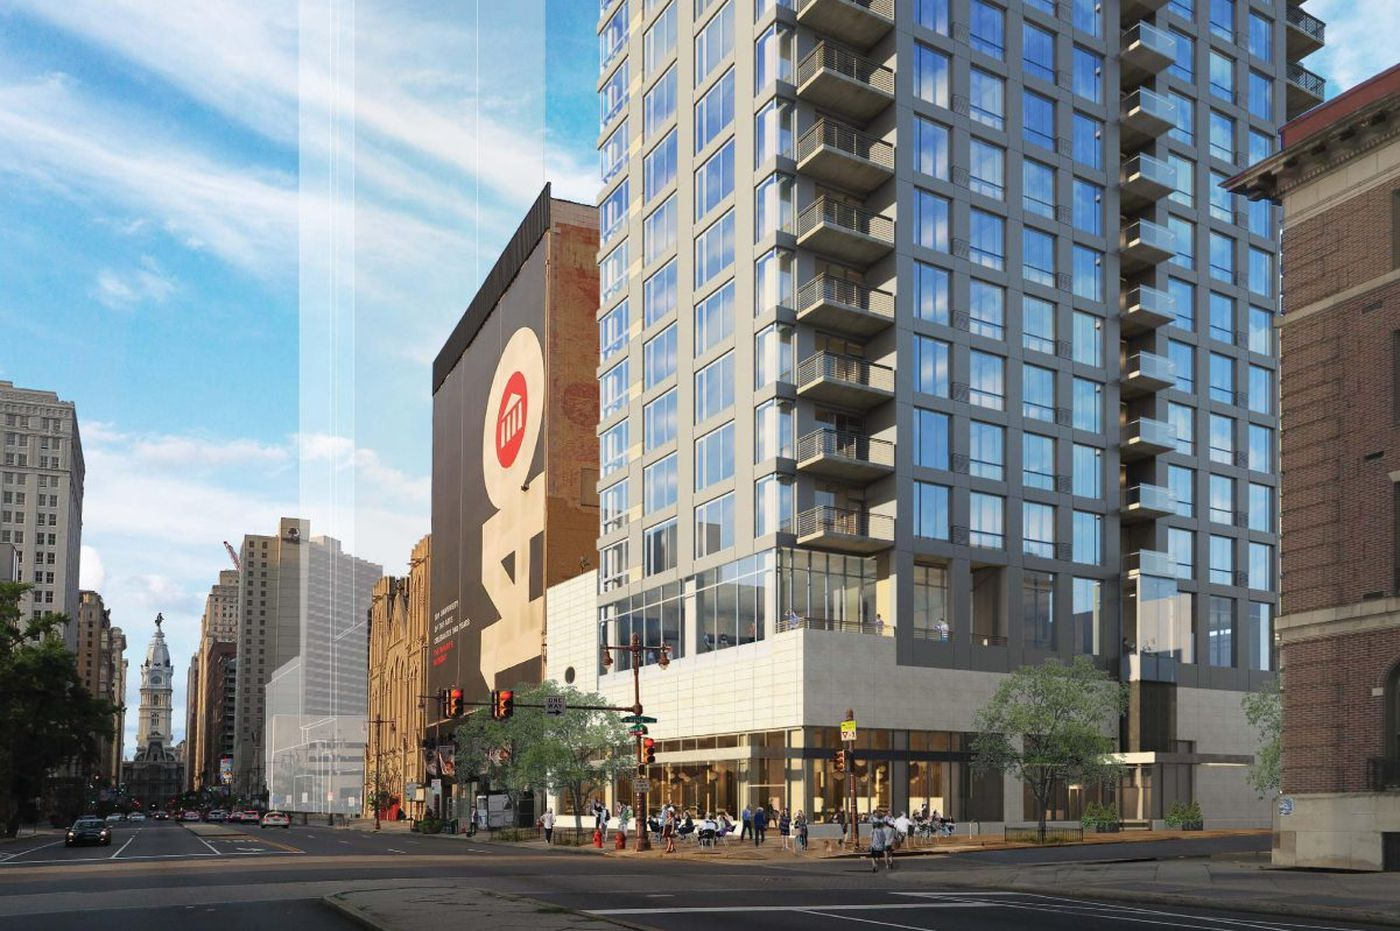 Philly board gives go-ahead to Dranoff's Broad and Pine St. condo proposal